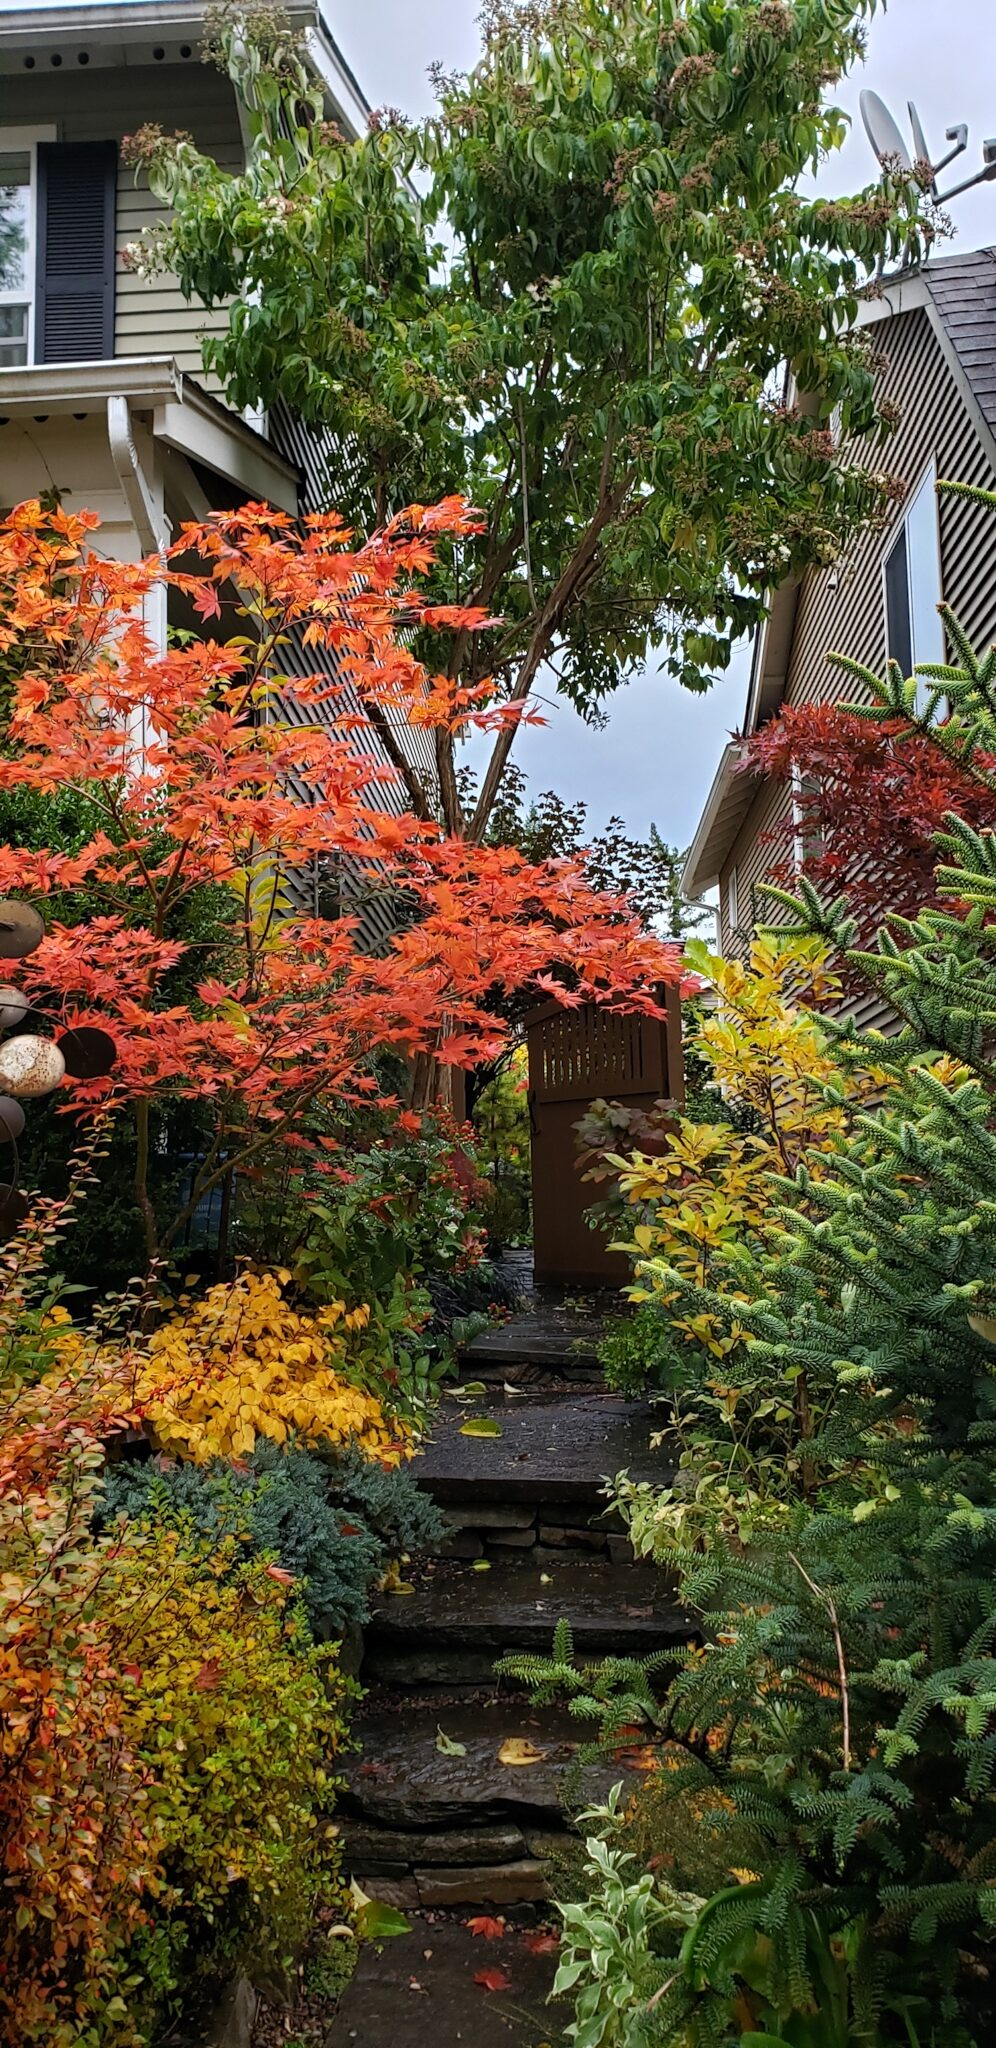 shrubs and small trees in a small garden space